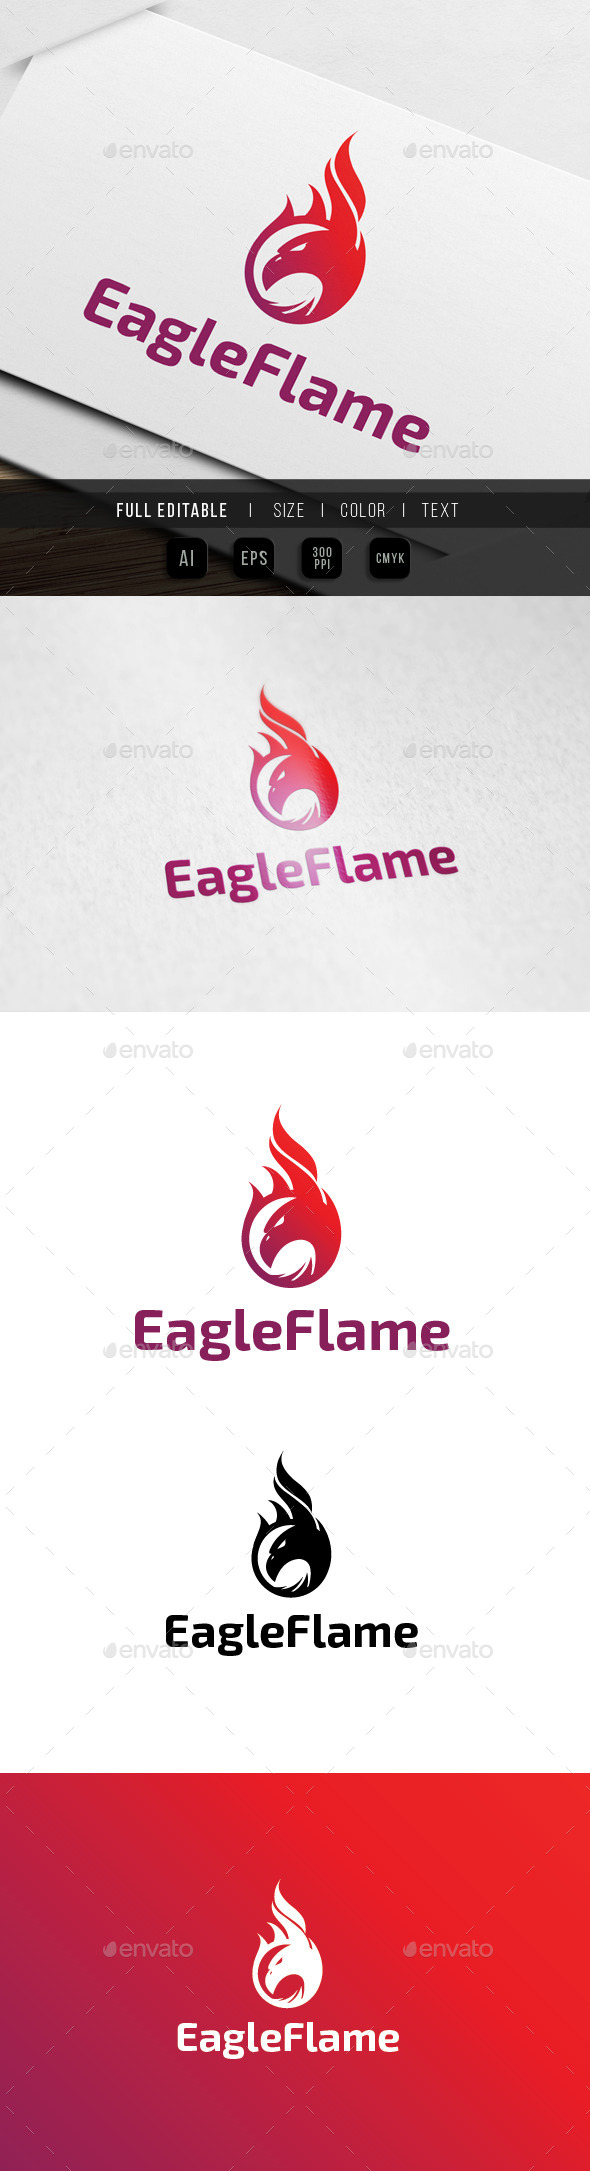 Eagle Flame Fire Logo